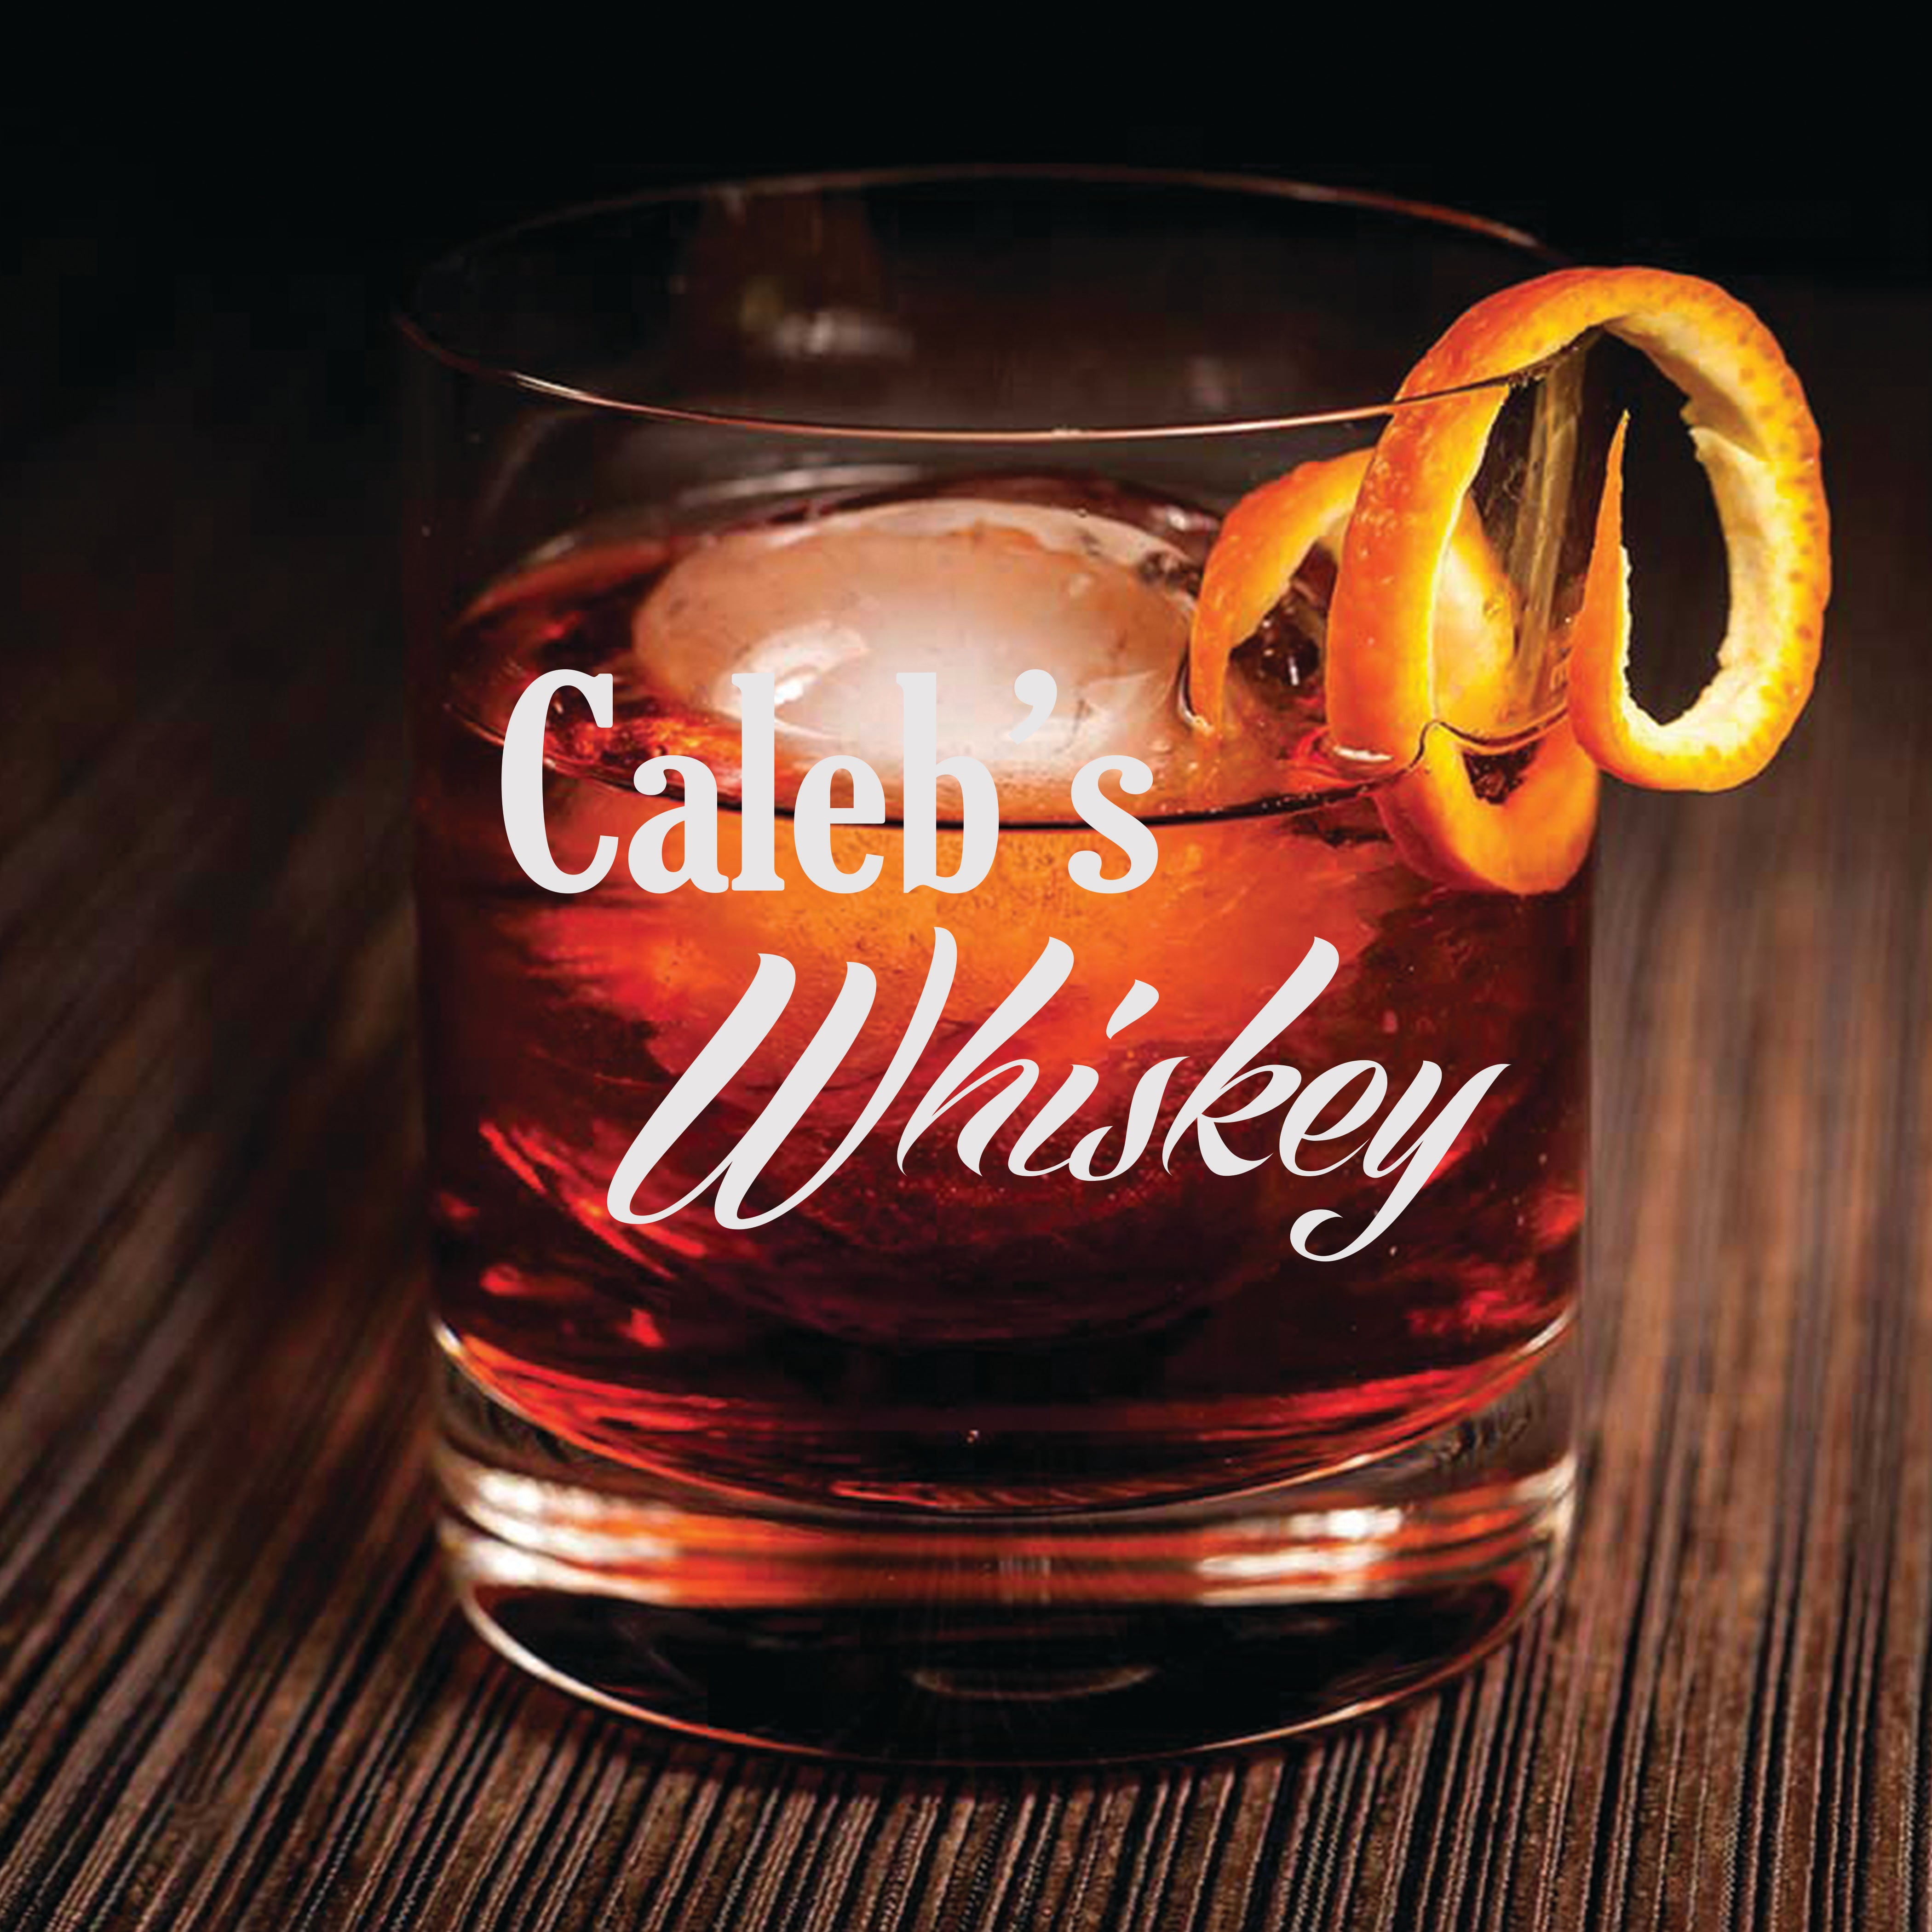 Caleb's Whiskey (1416)